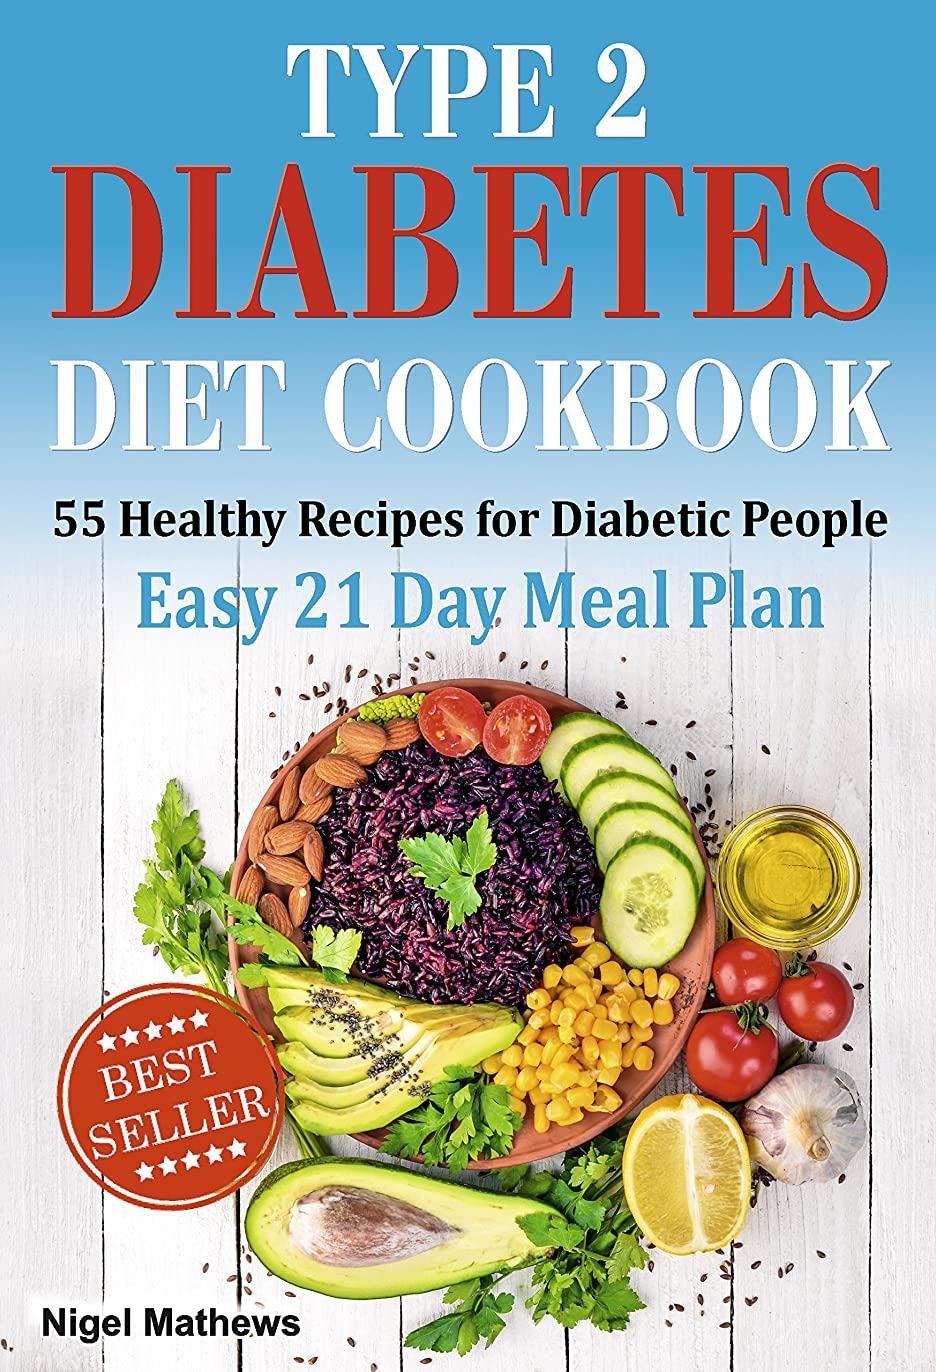 Type 2 Diabetes Diet Cookbook & Meal Plan: 55 Healthy Recipes for Diabetic People with an Easy 21 Day Meal Plan (type diabetes 2, diabetes type 2 diet, ... meals for diabetics) (English Edition)